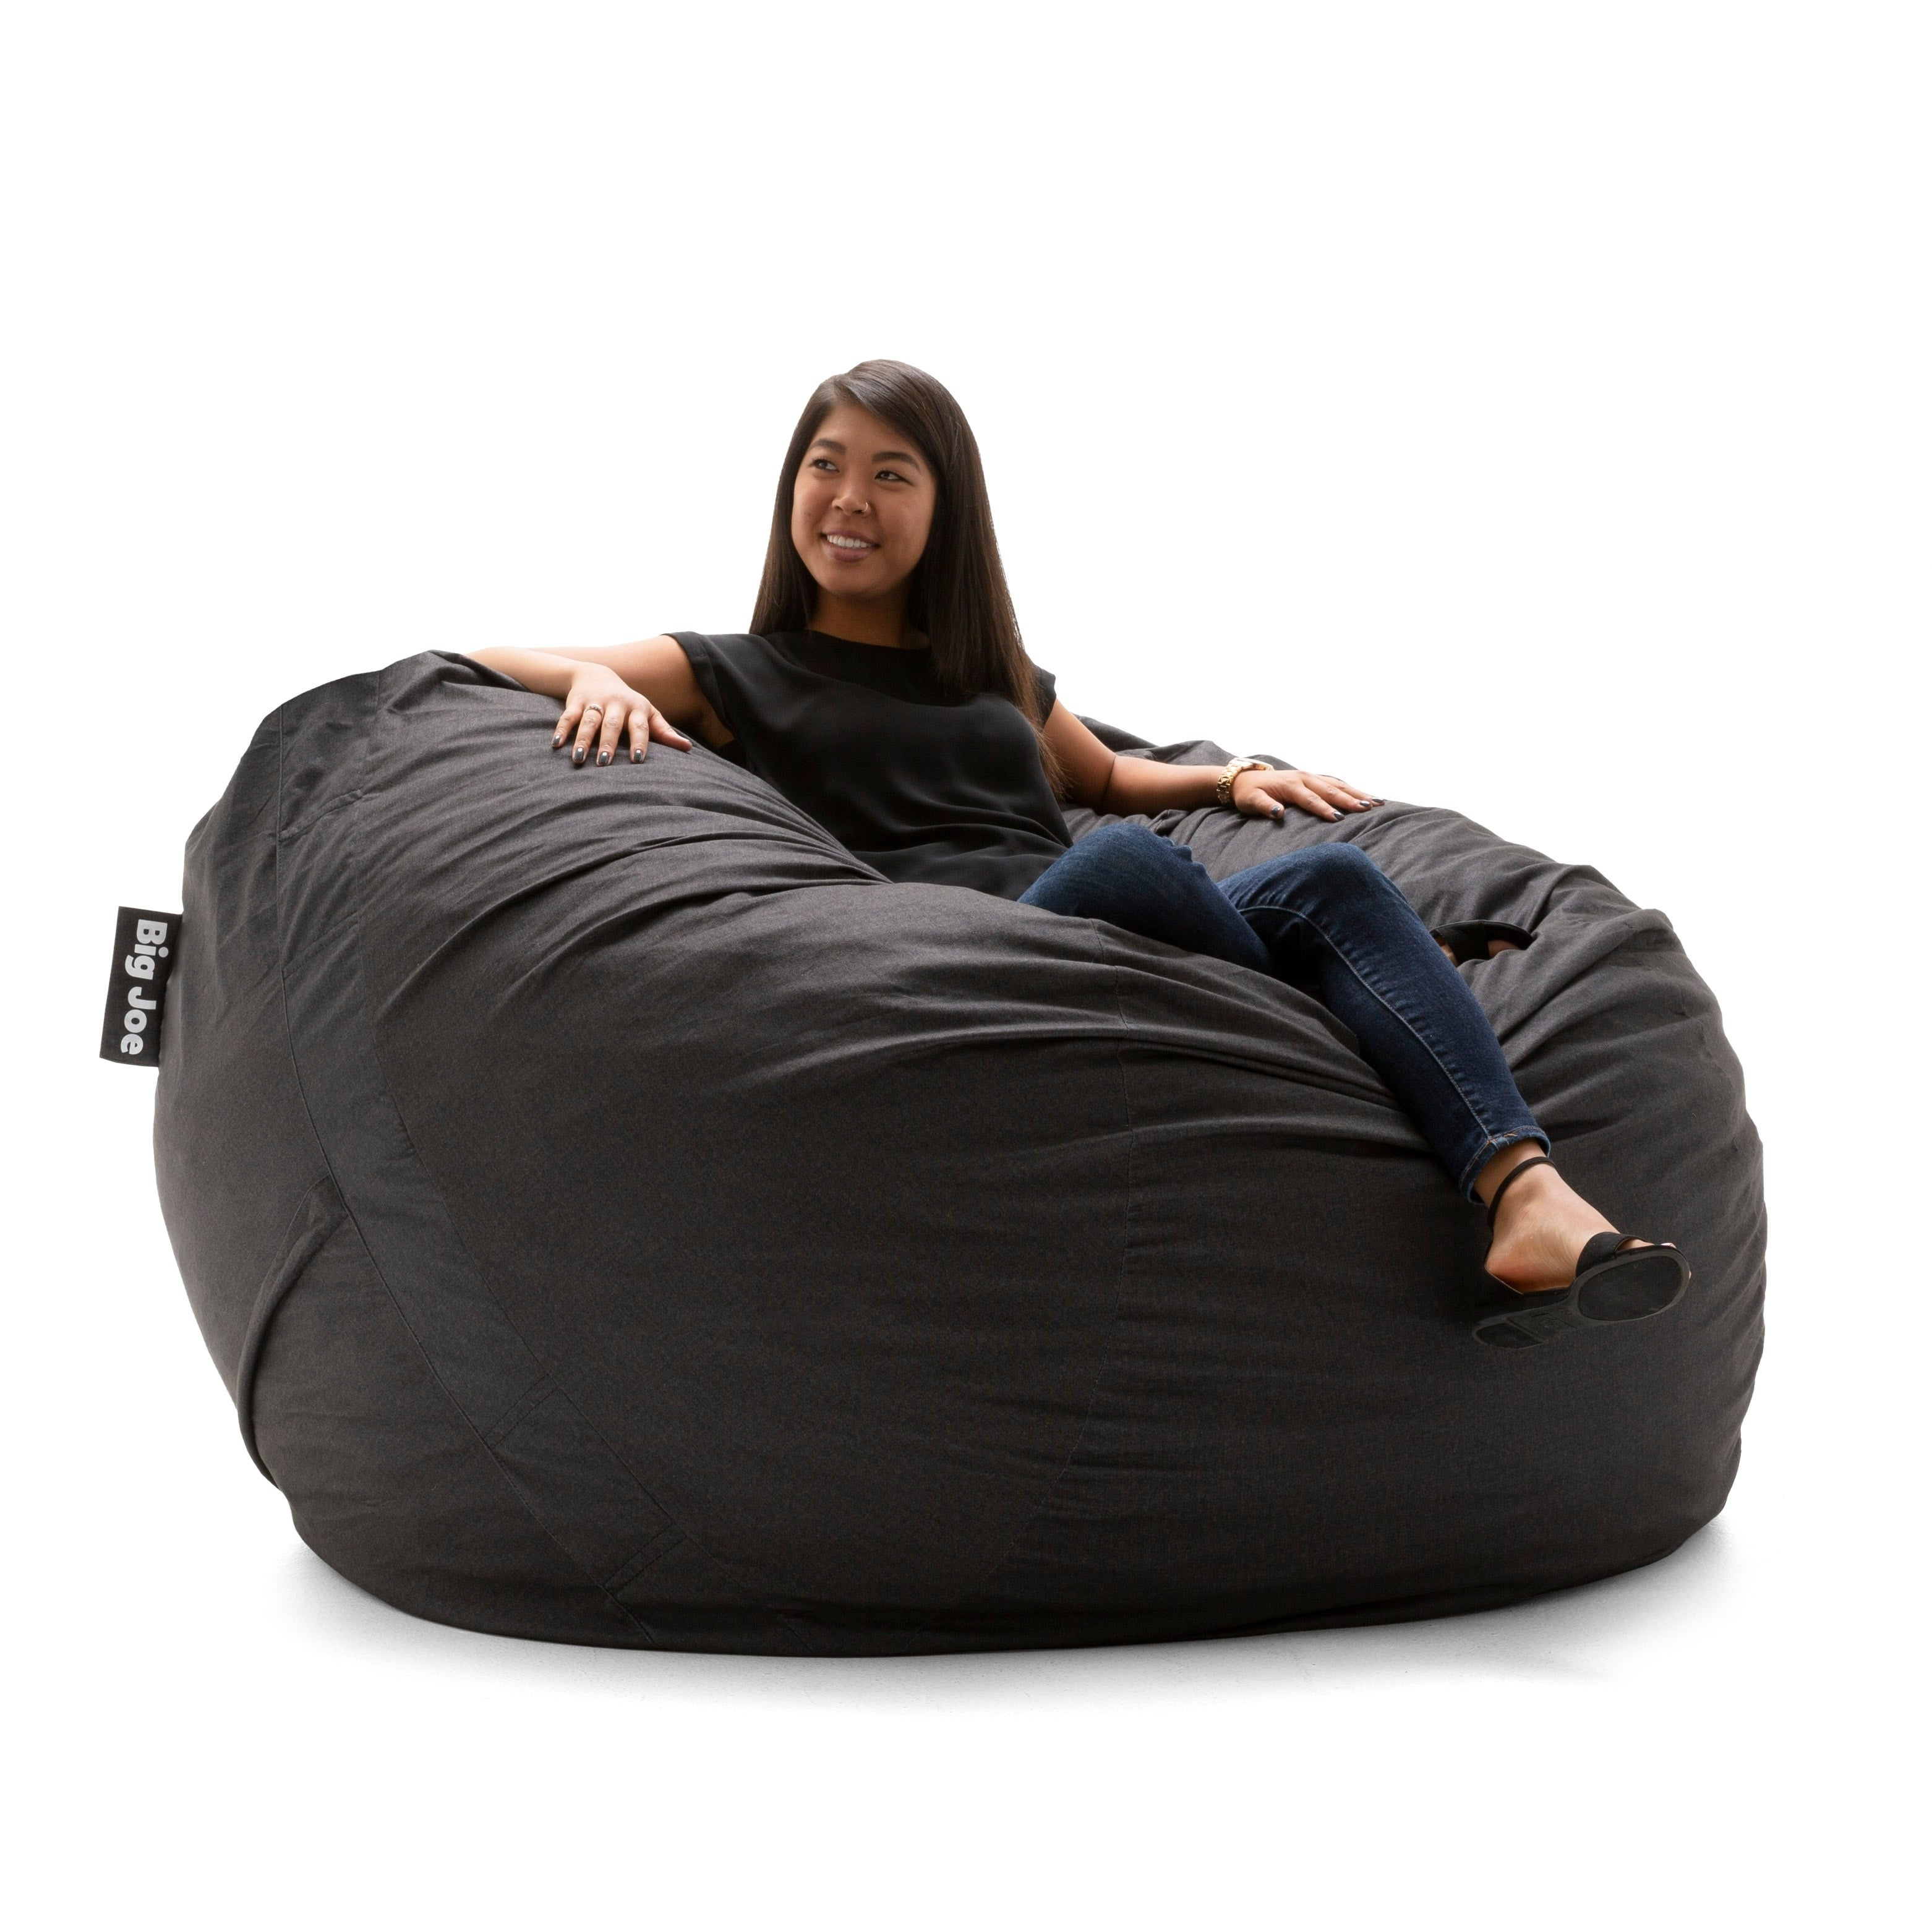 Groovy Big Joe Super Fuf Bean Bag Chair Removable Cover Pdpeps Interior Chair Design Pdpepsorg